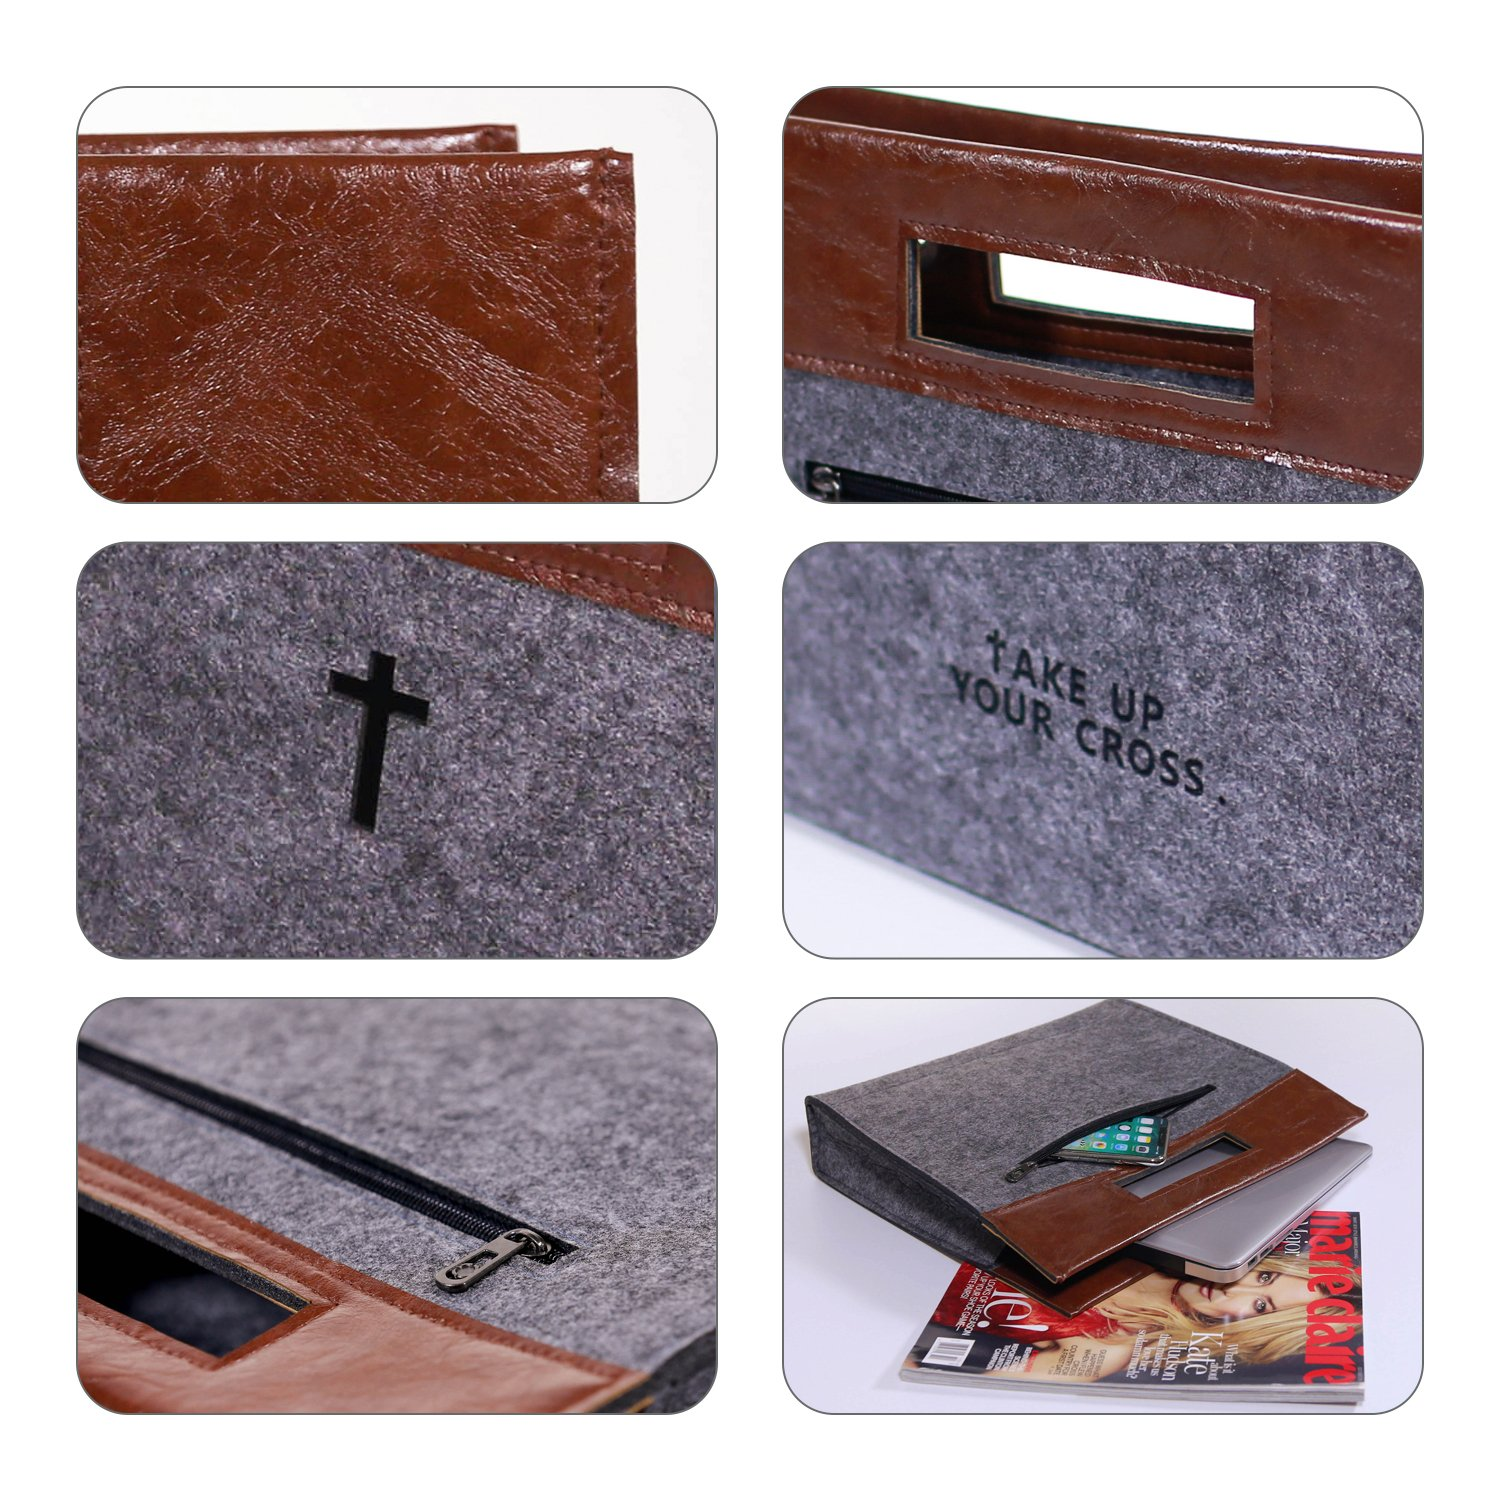 Bible Carrying Case Felt Bible Cover for Men Church Tote Bag with Zipper Roomy Bible Study Case, Christian Gift for Week Deals by GODPASS (Image #4)